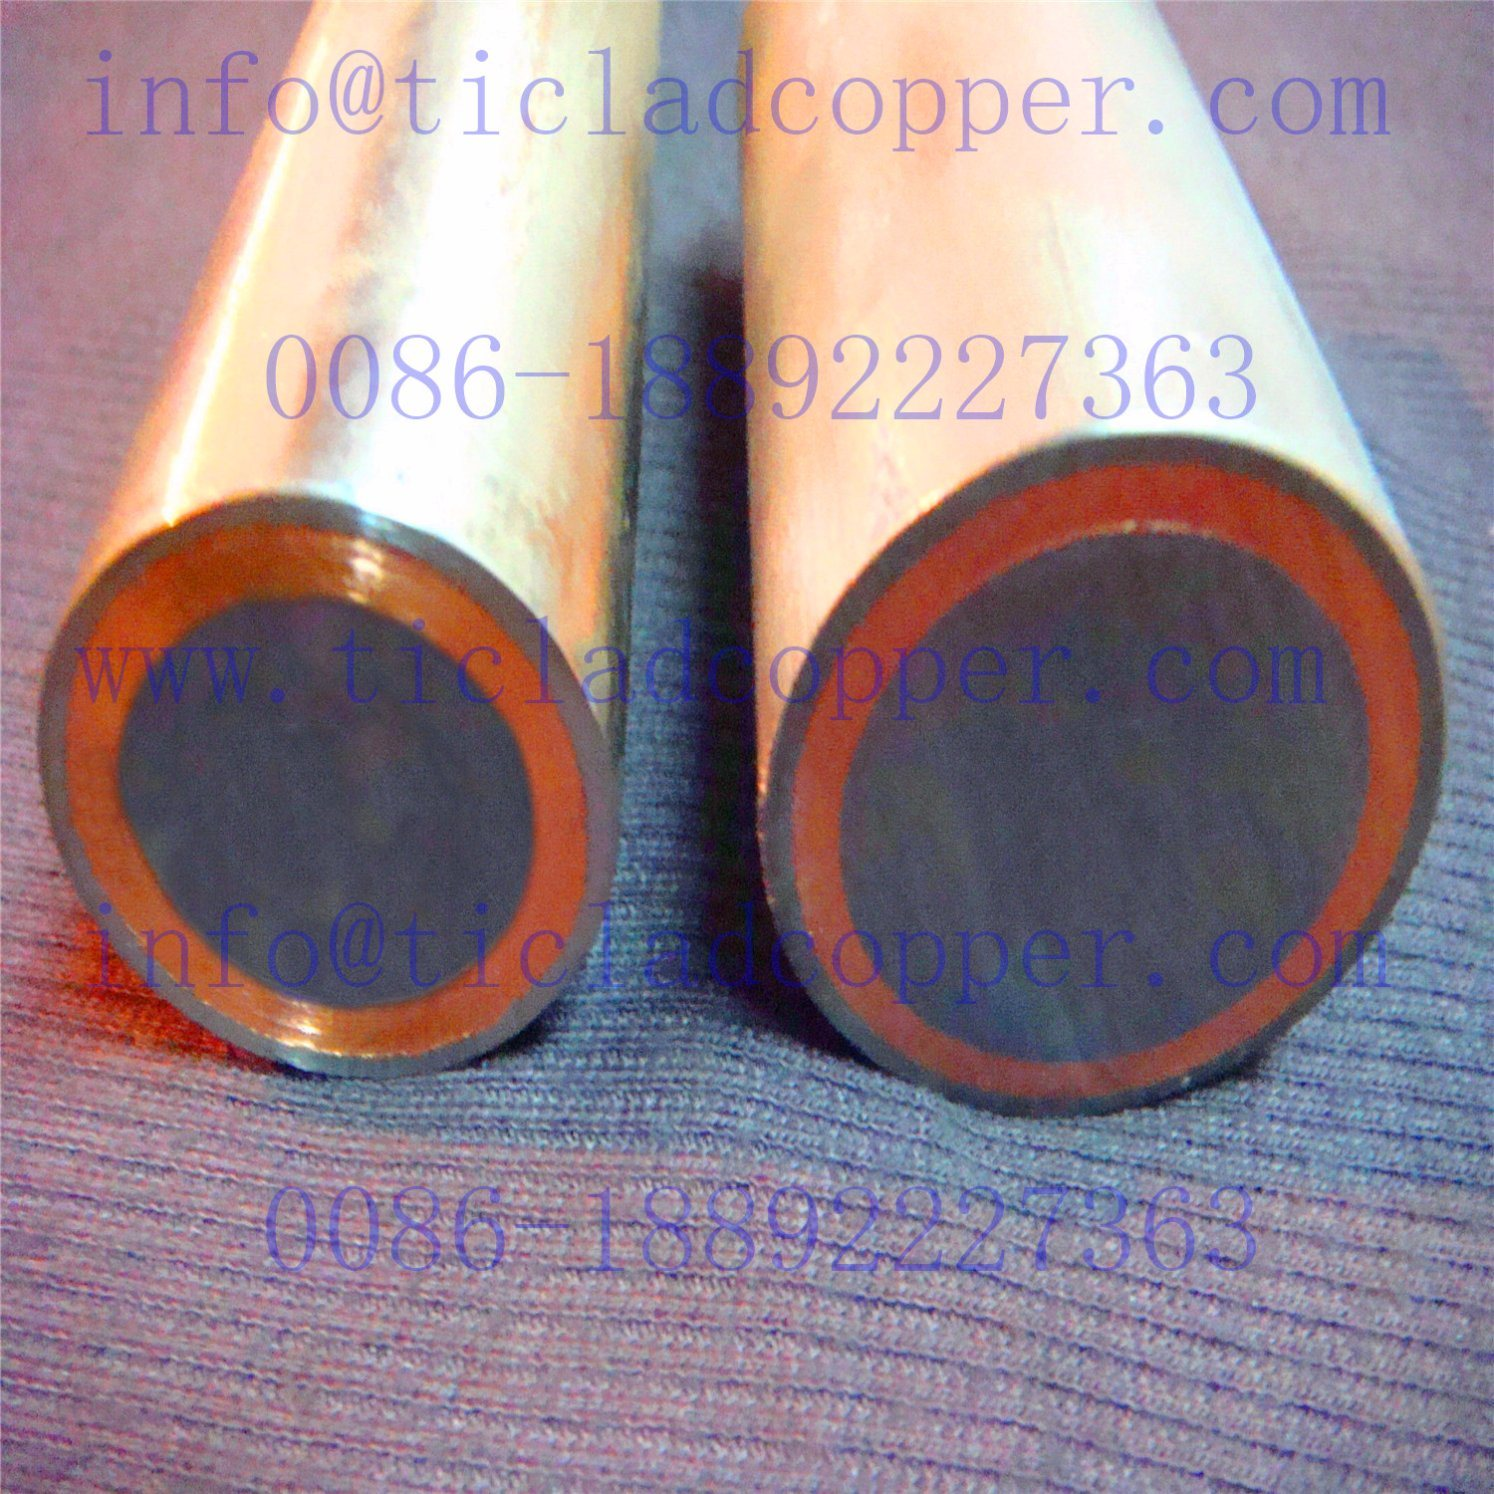 Nickle Clad Copper Conductive Bus Bar Anode for Printed Circuit Board/Electrolyzing